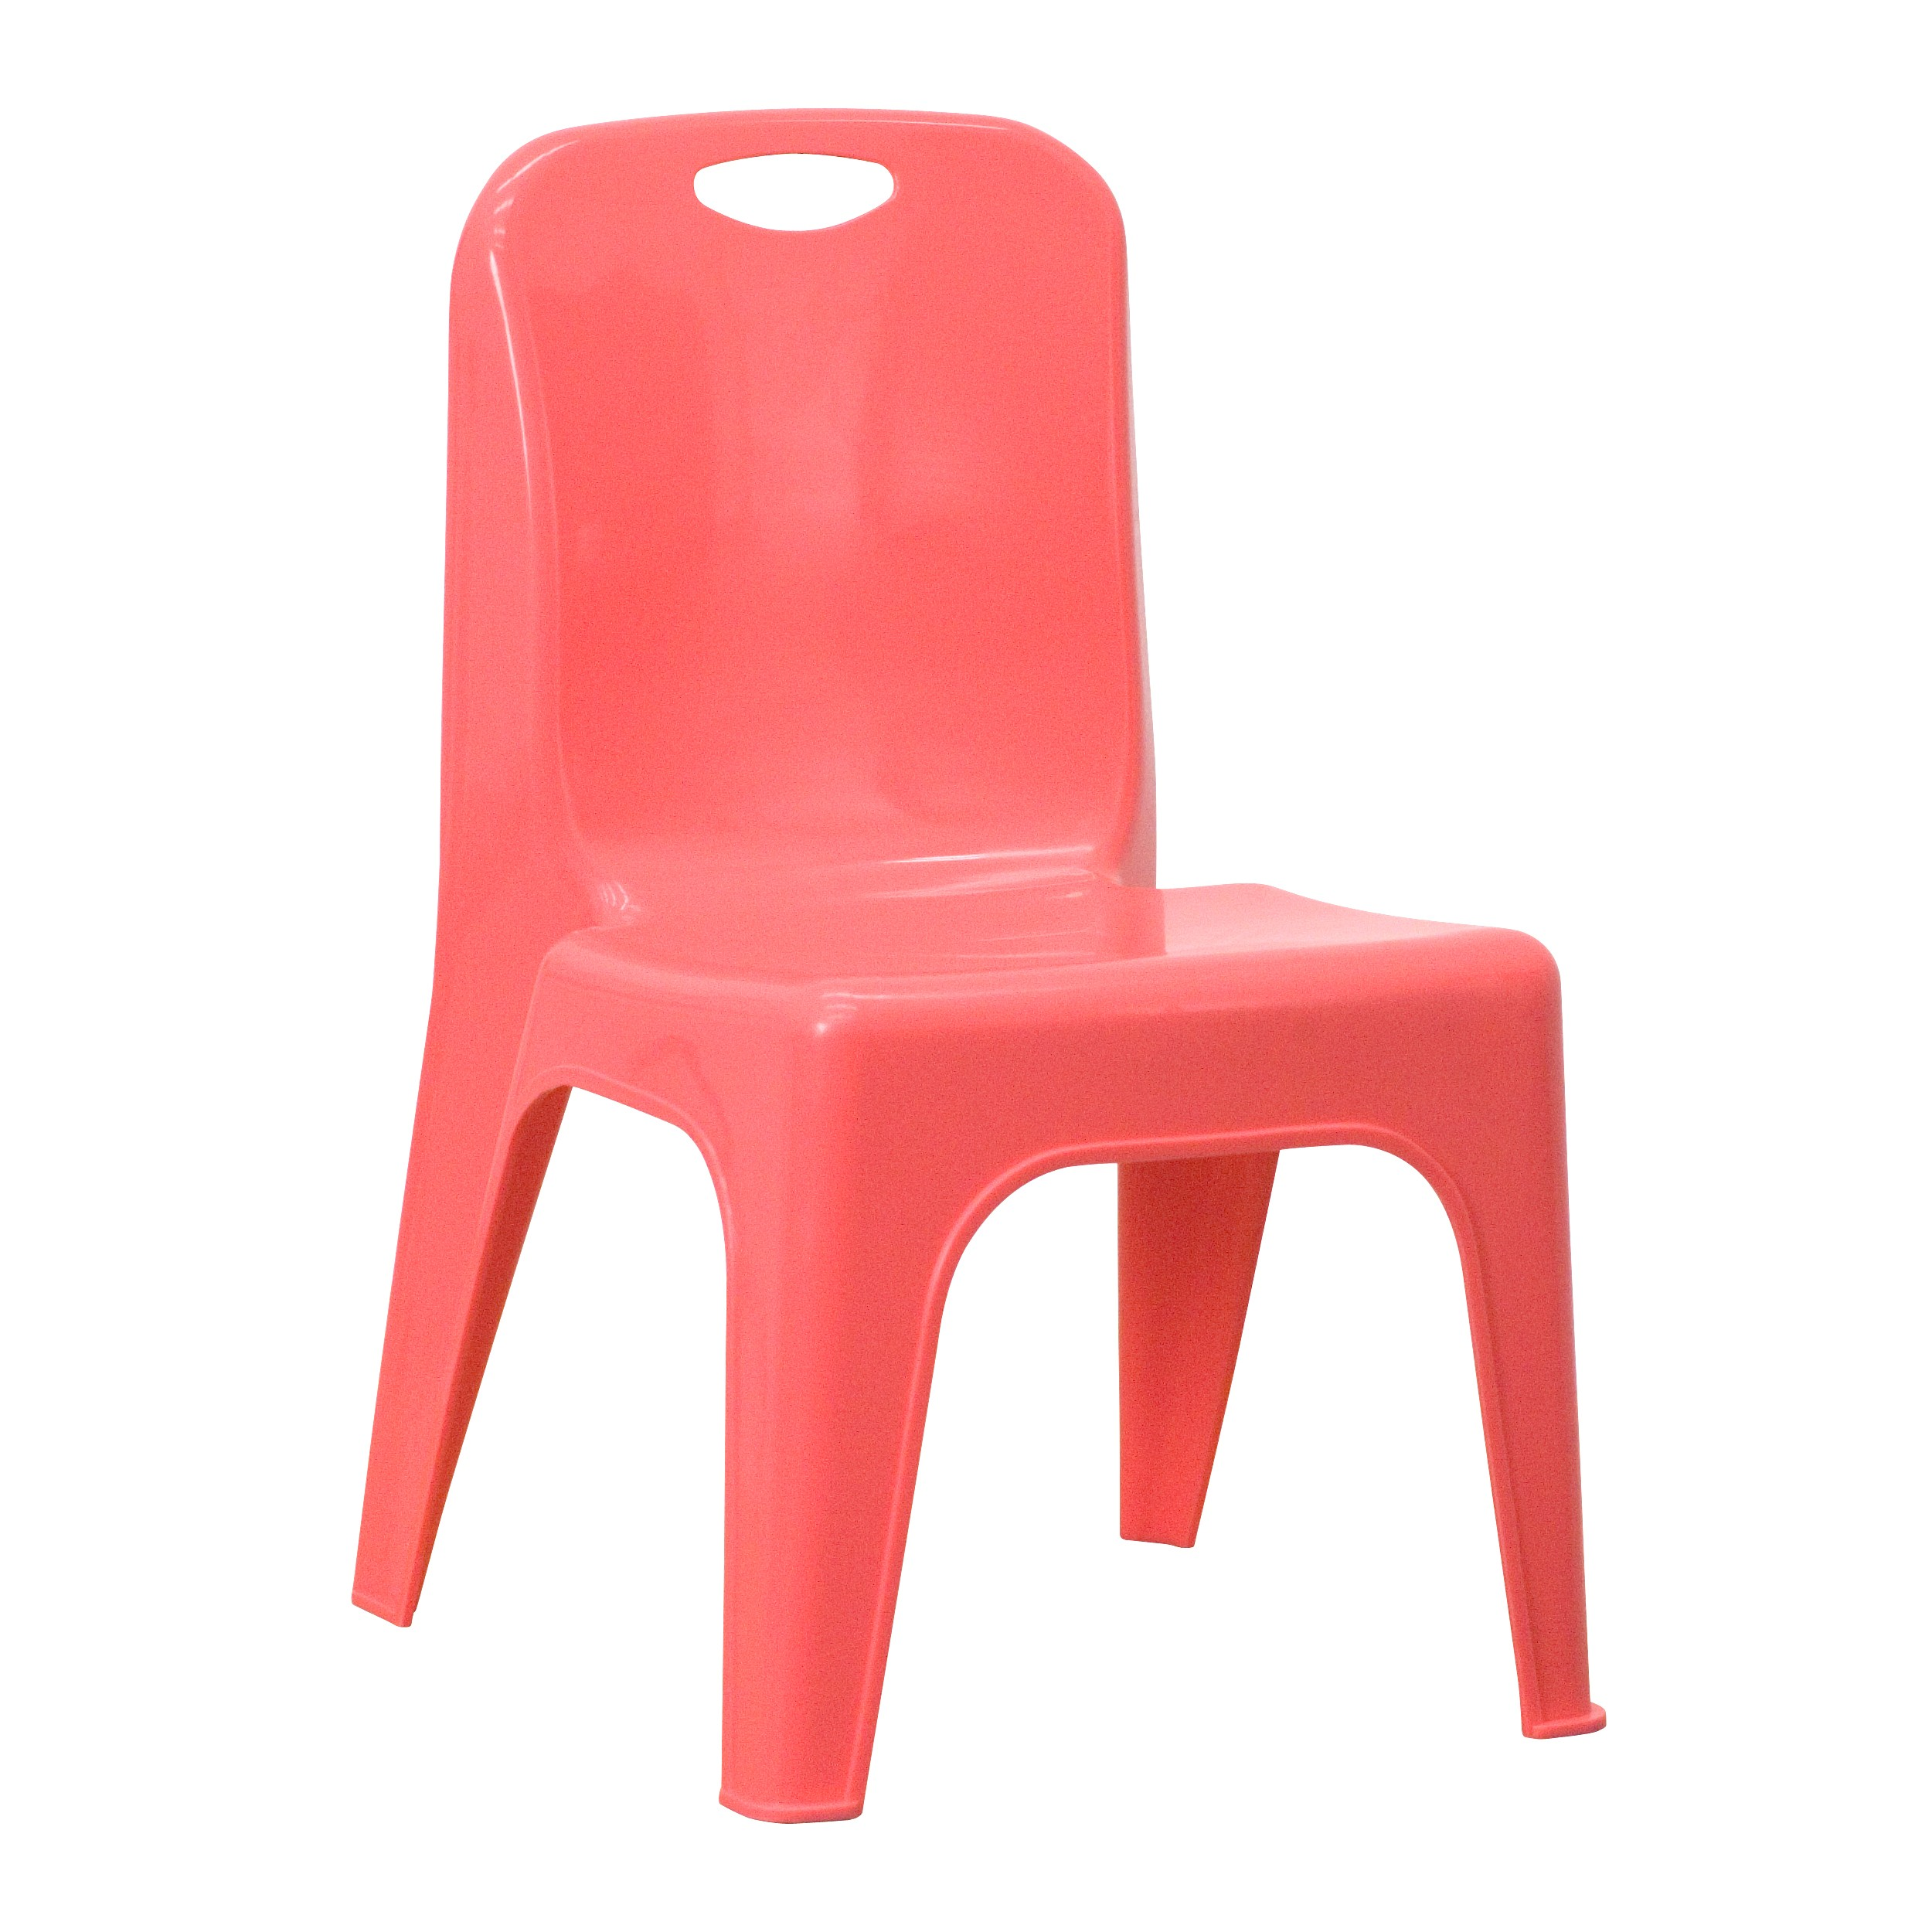 MFO Red Plastic Stackable School Chair with Carrying Handle and 11.